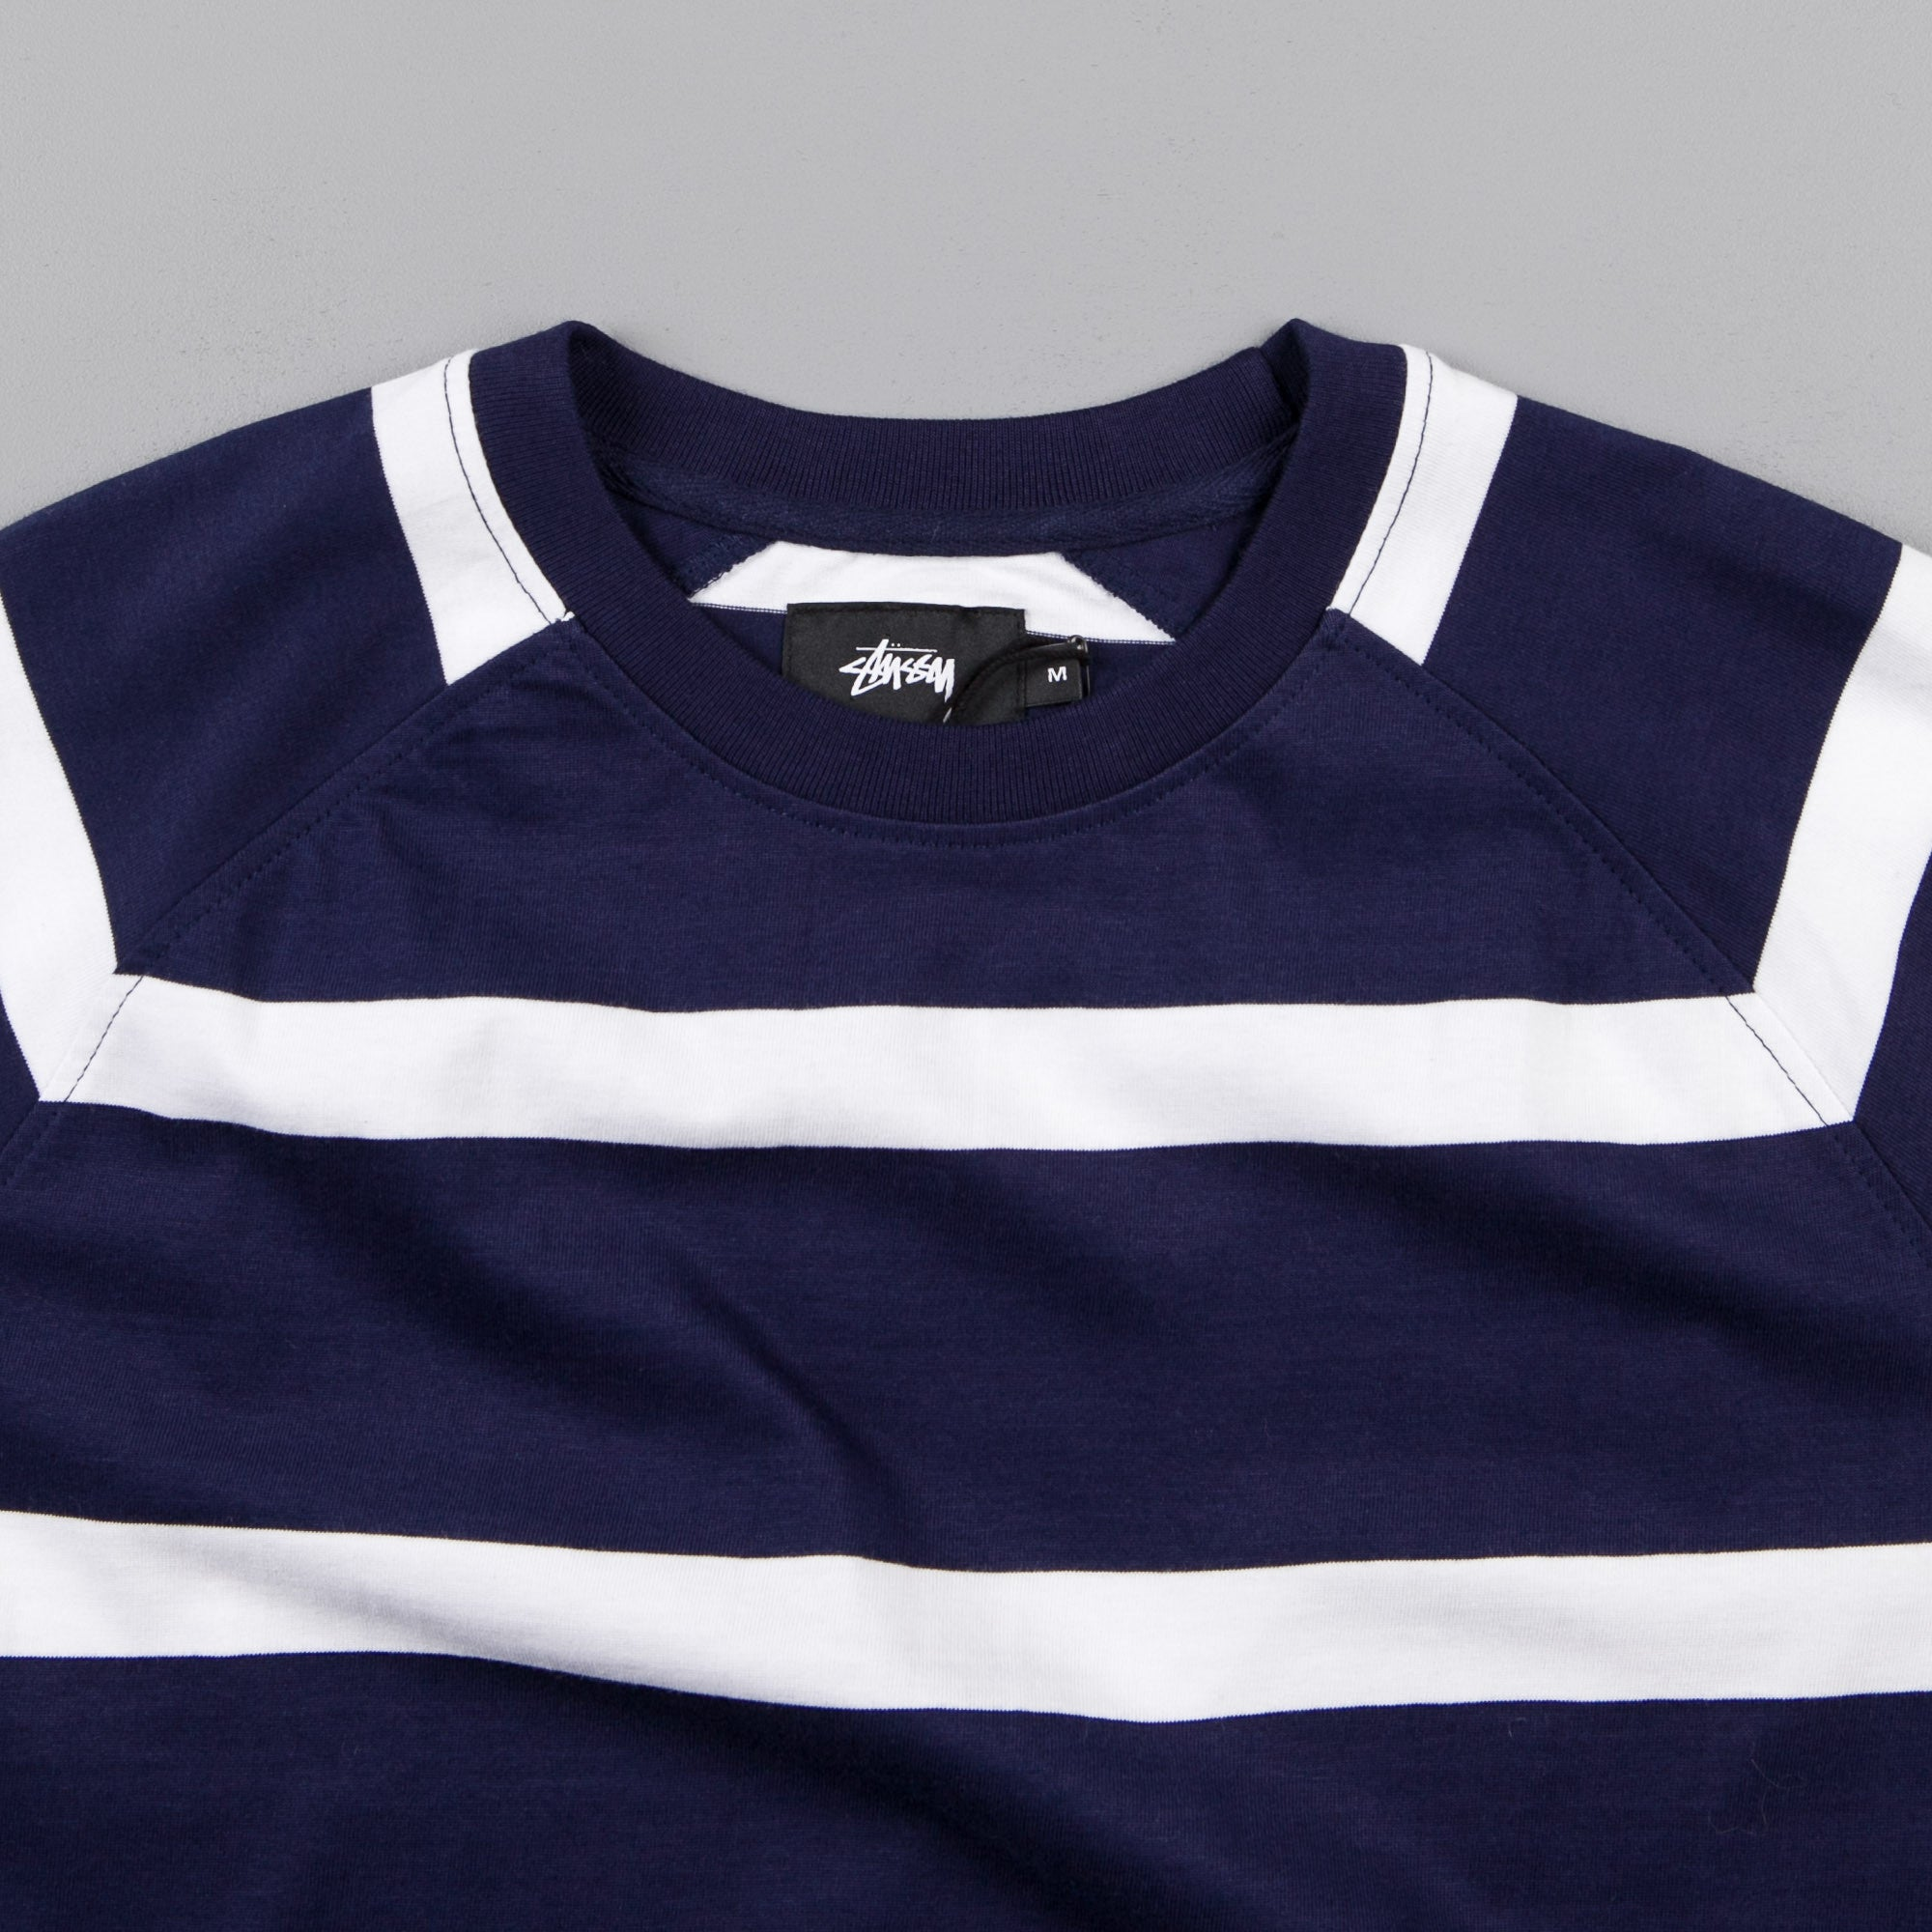 Stussy Striped Raglan Crewneck Sweatshirt - Navy